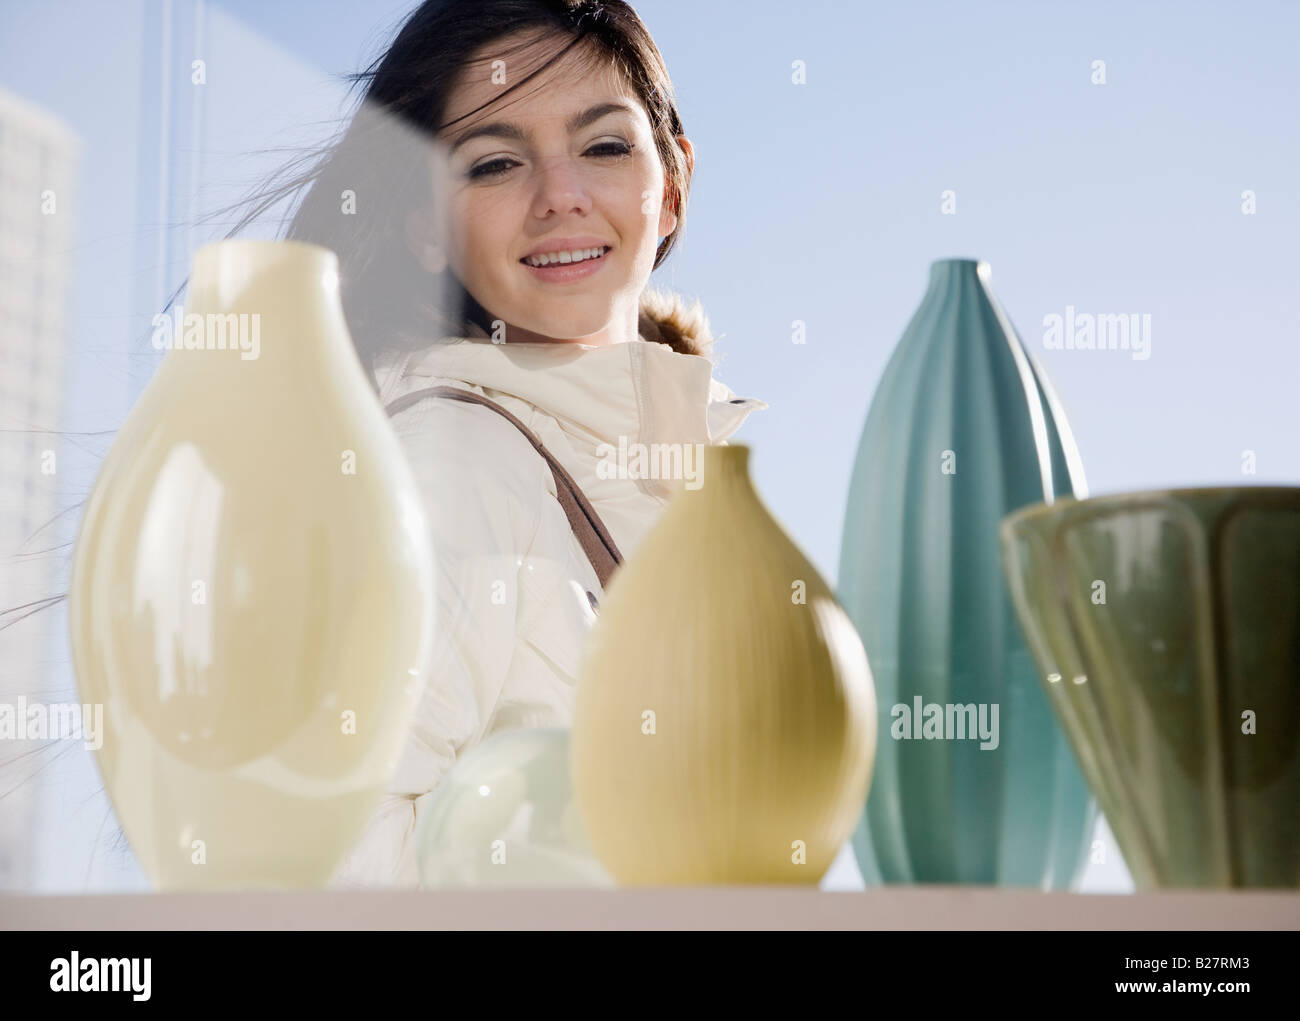 Woman looking at pottery in window - Stock Image